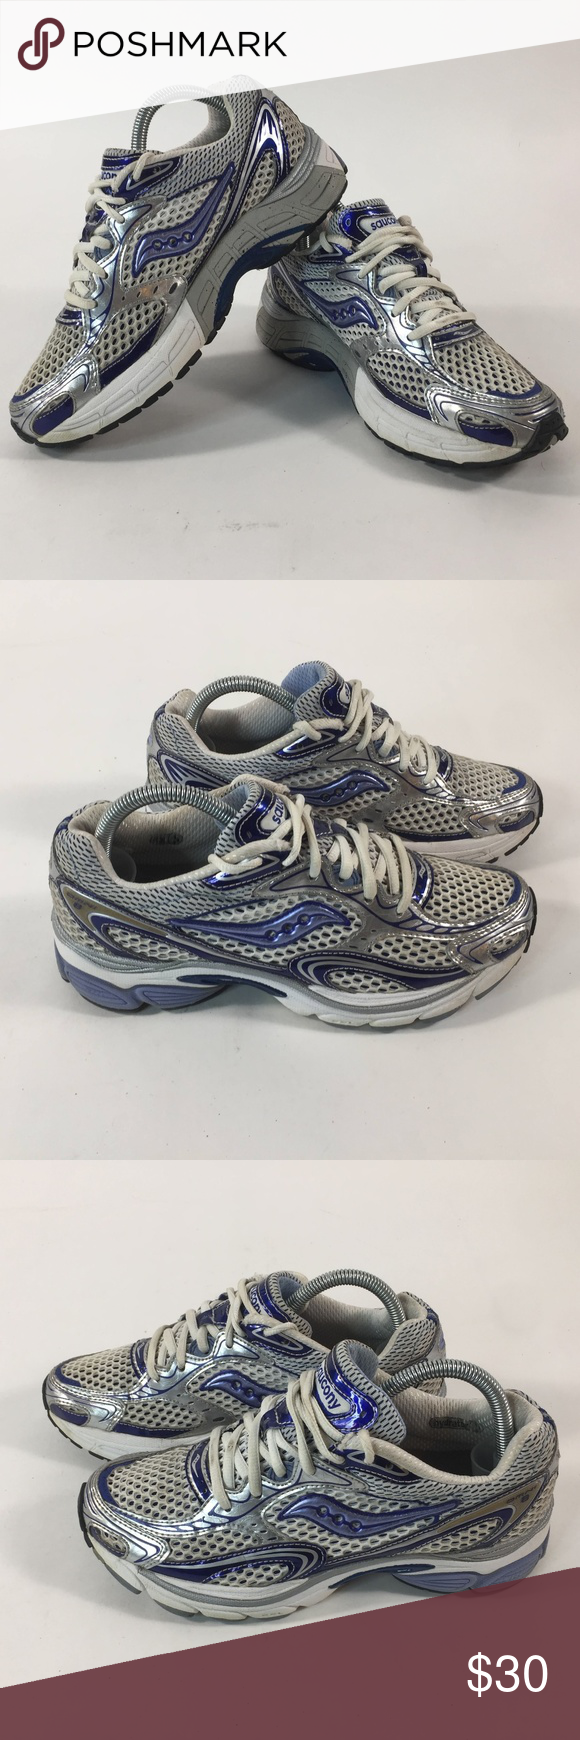 Saucony Omni 8 Running Shoes #10043-1